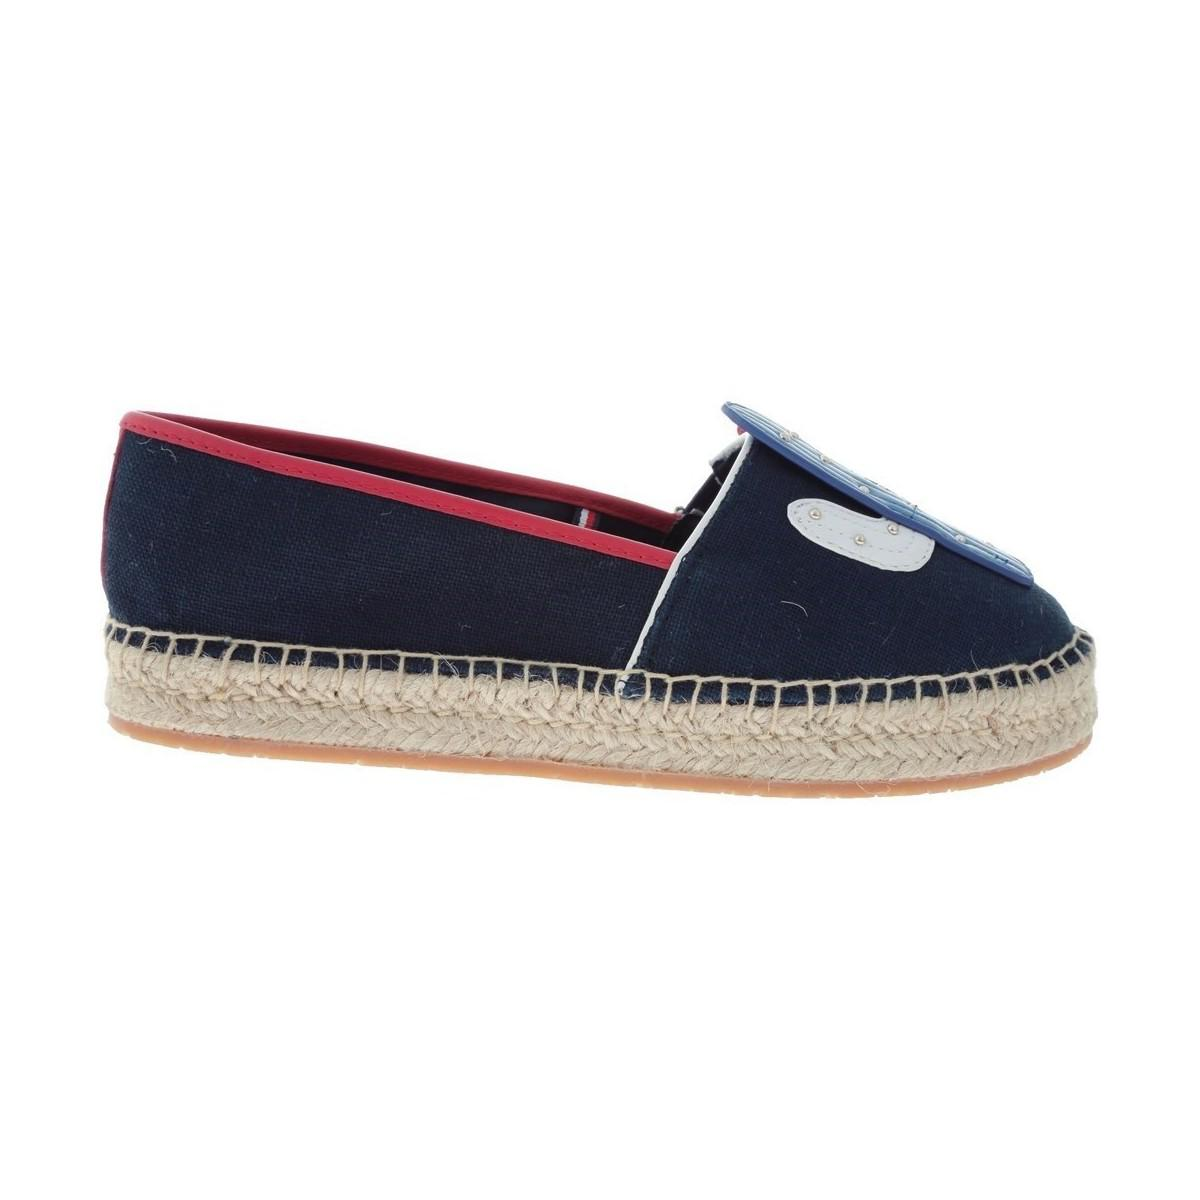 Womens Patch Corporate Espadrilles Tommy Hilfiger Cheap Perfect Sale 100% Authentic zzNgGh